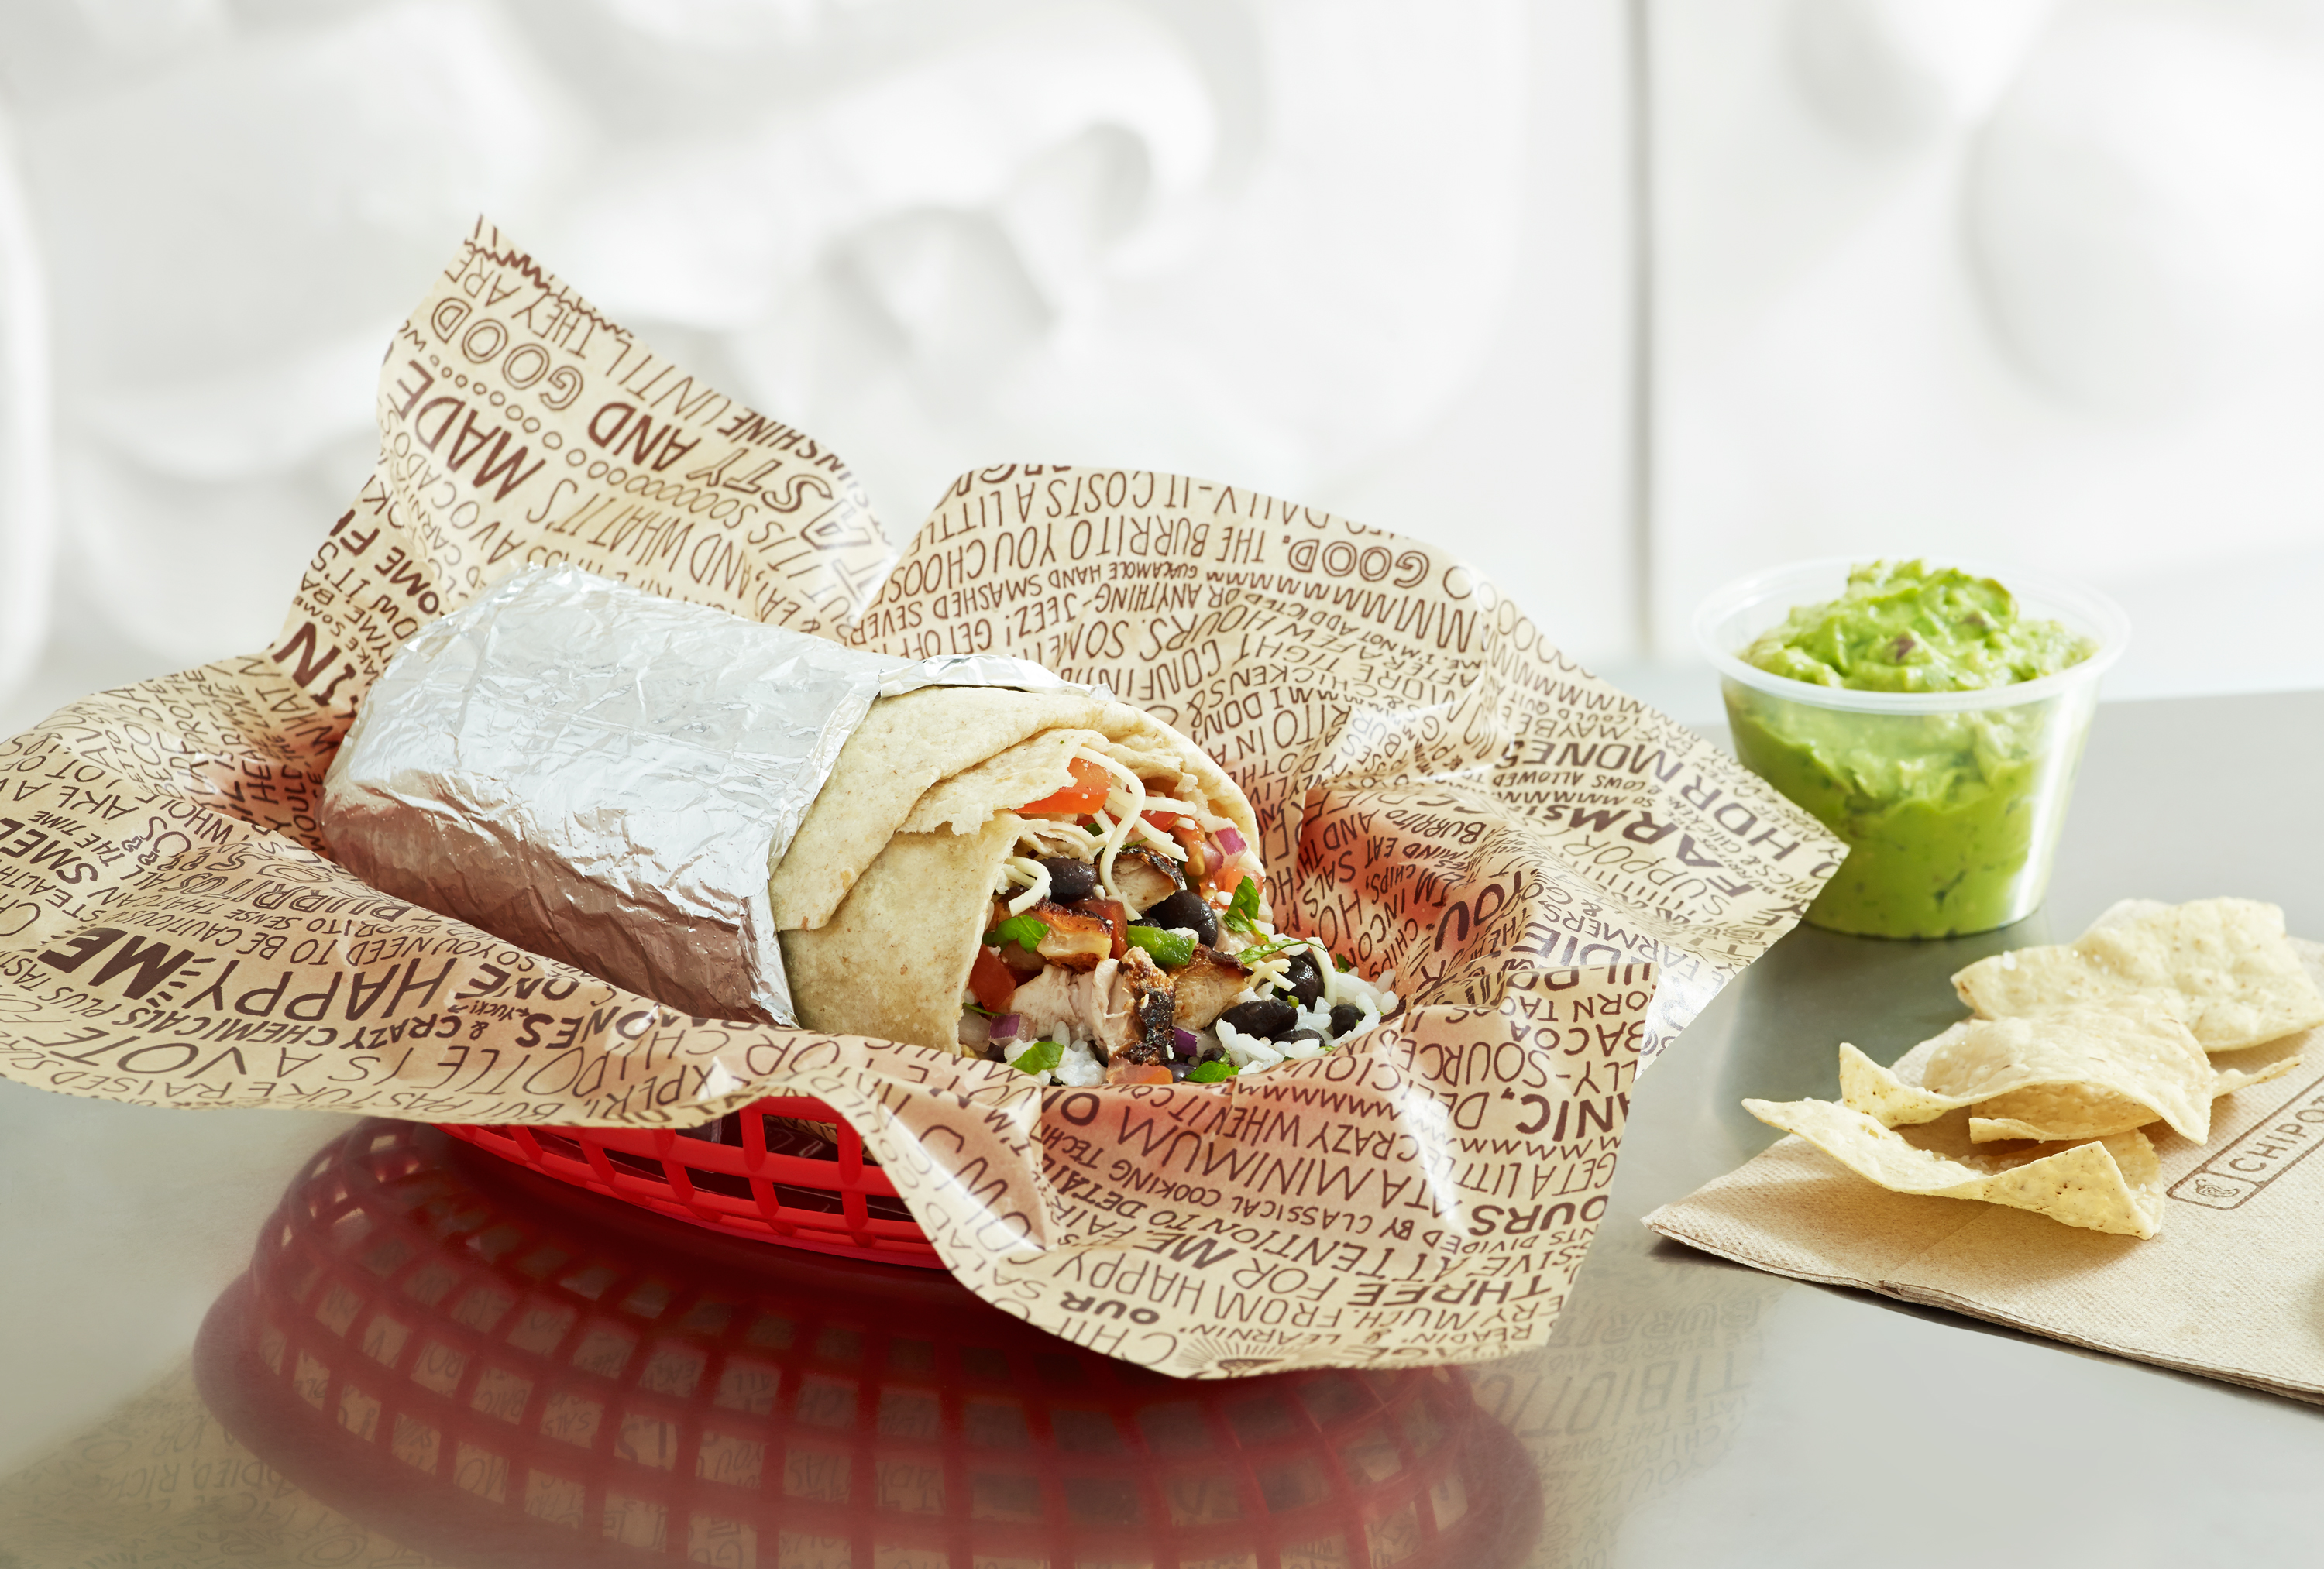 Frf-chipotle-fy17-photo